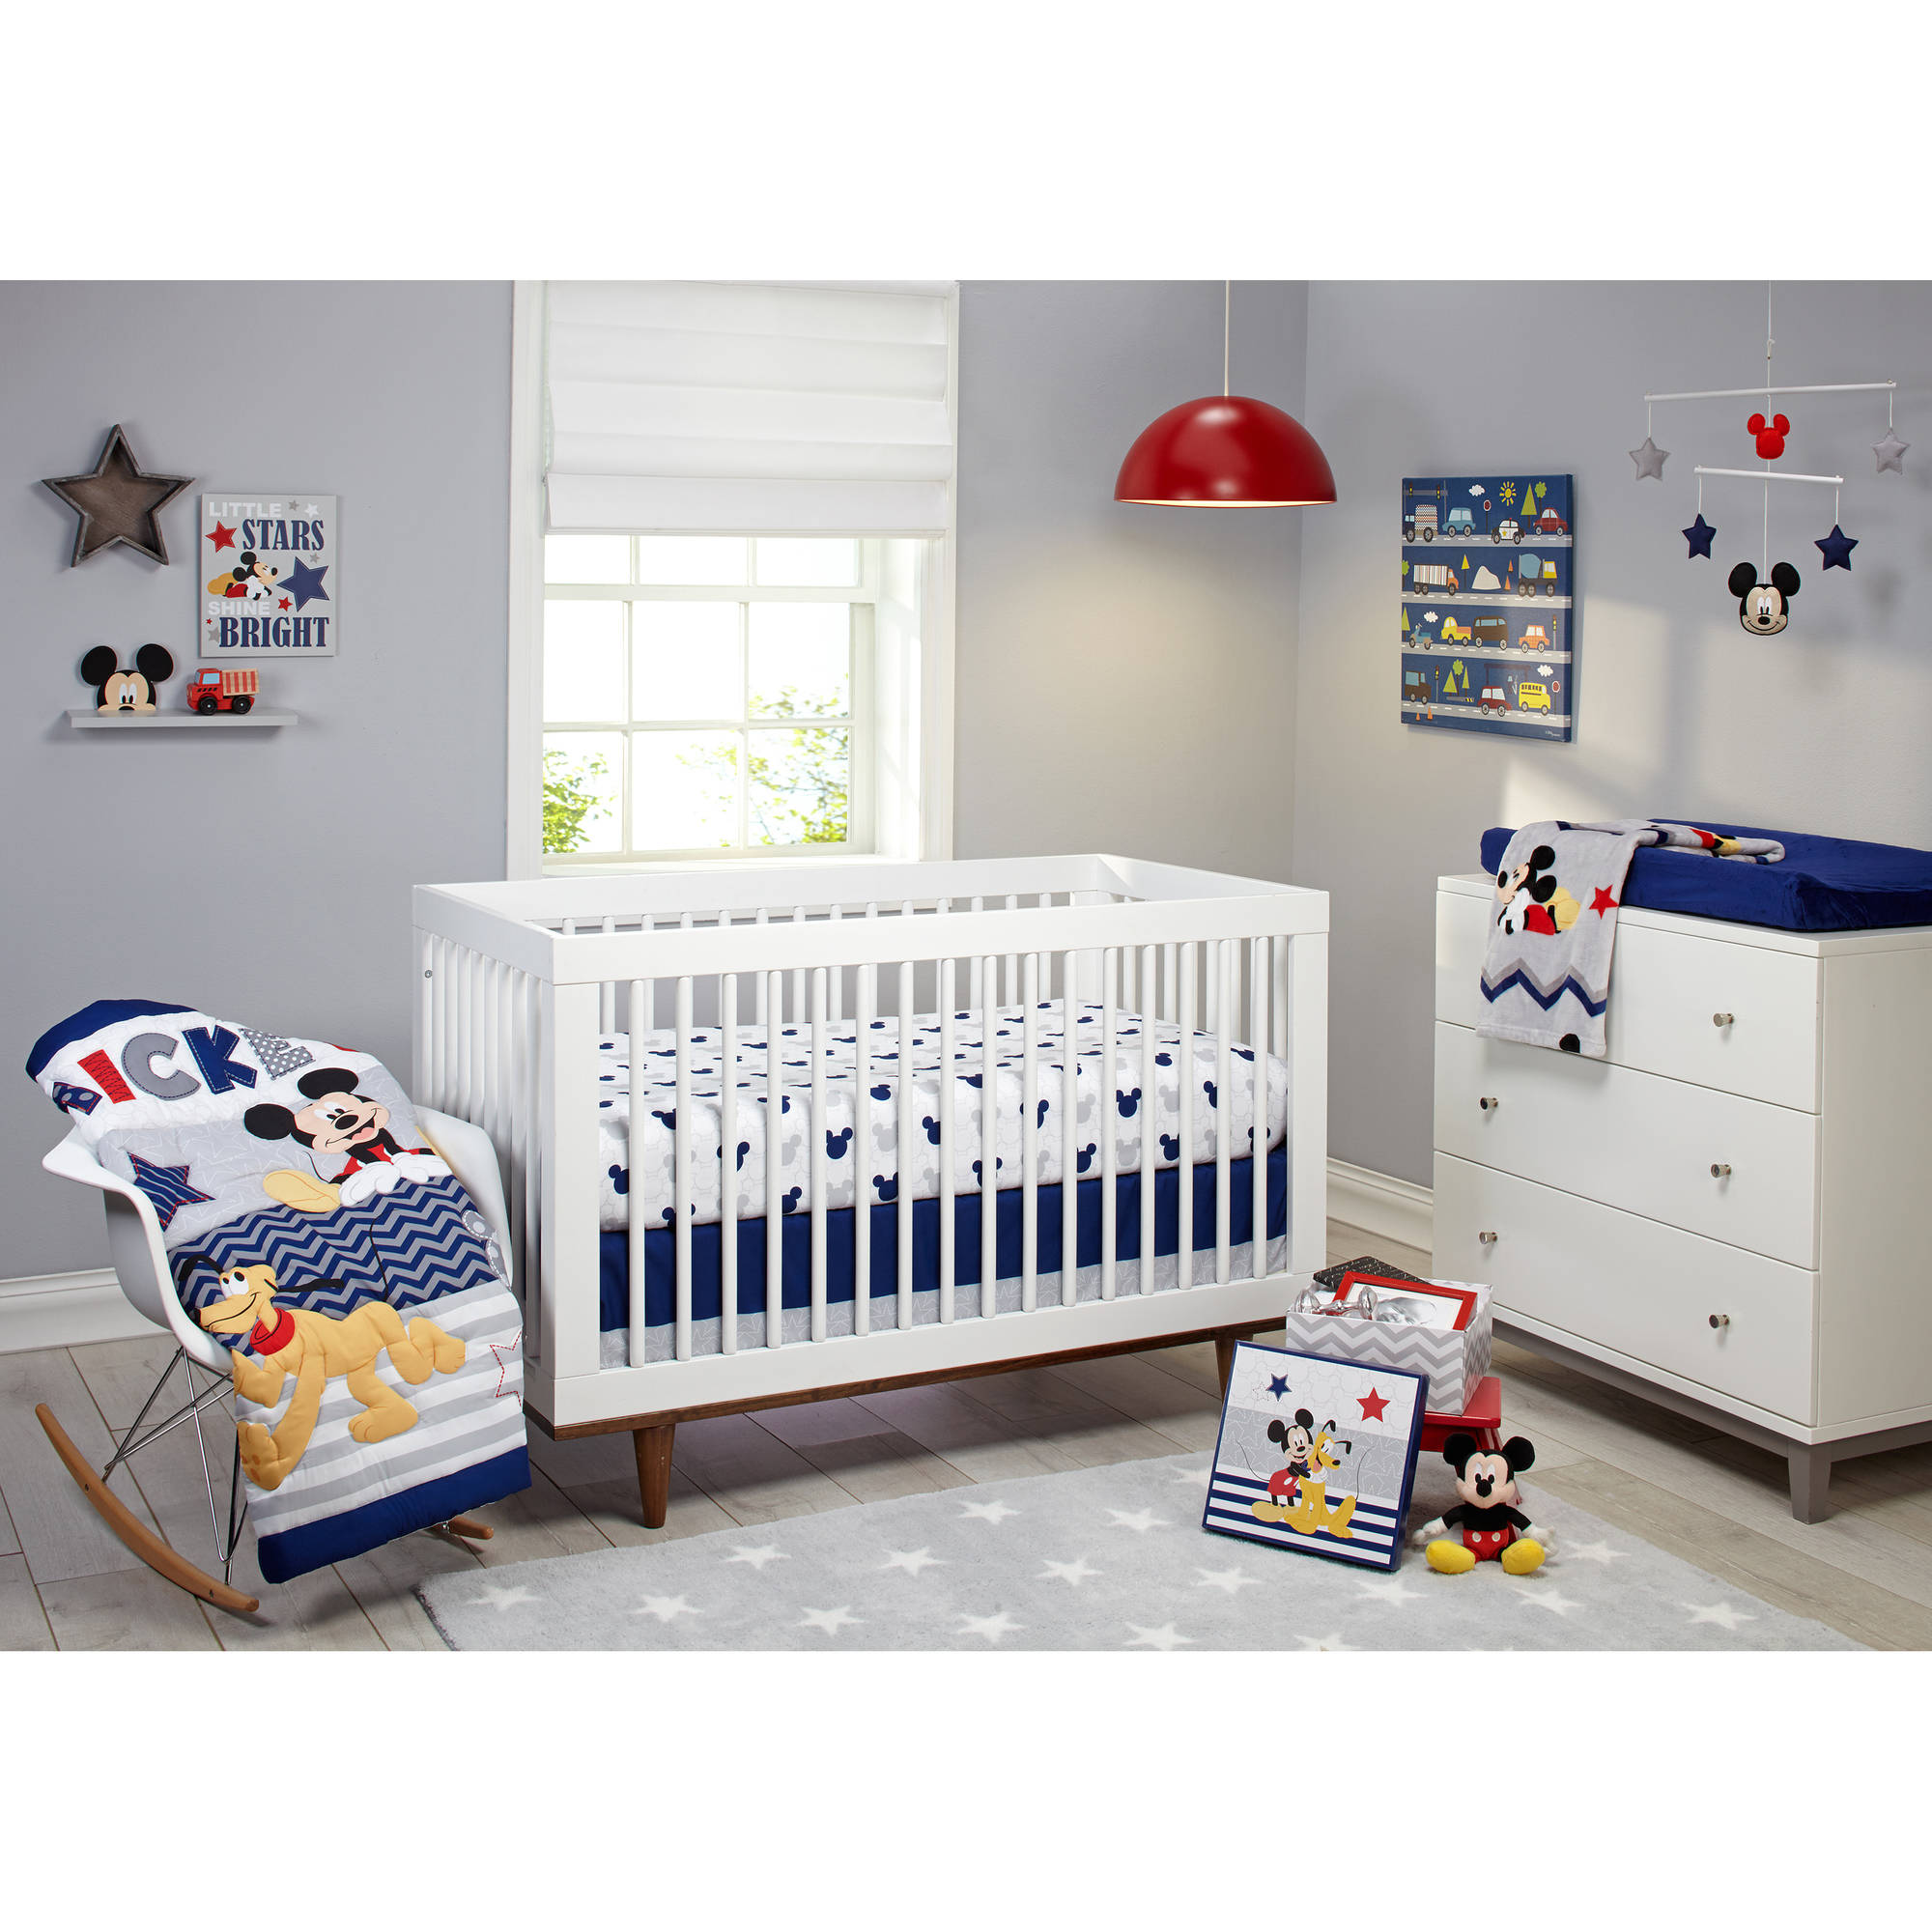 Disney Let s Go Mickey II 4 Piece Crib Bedding Set Walmart